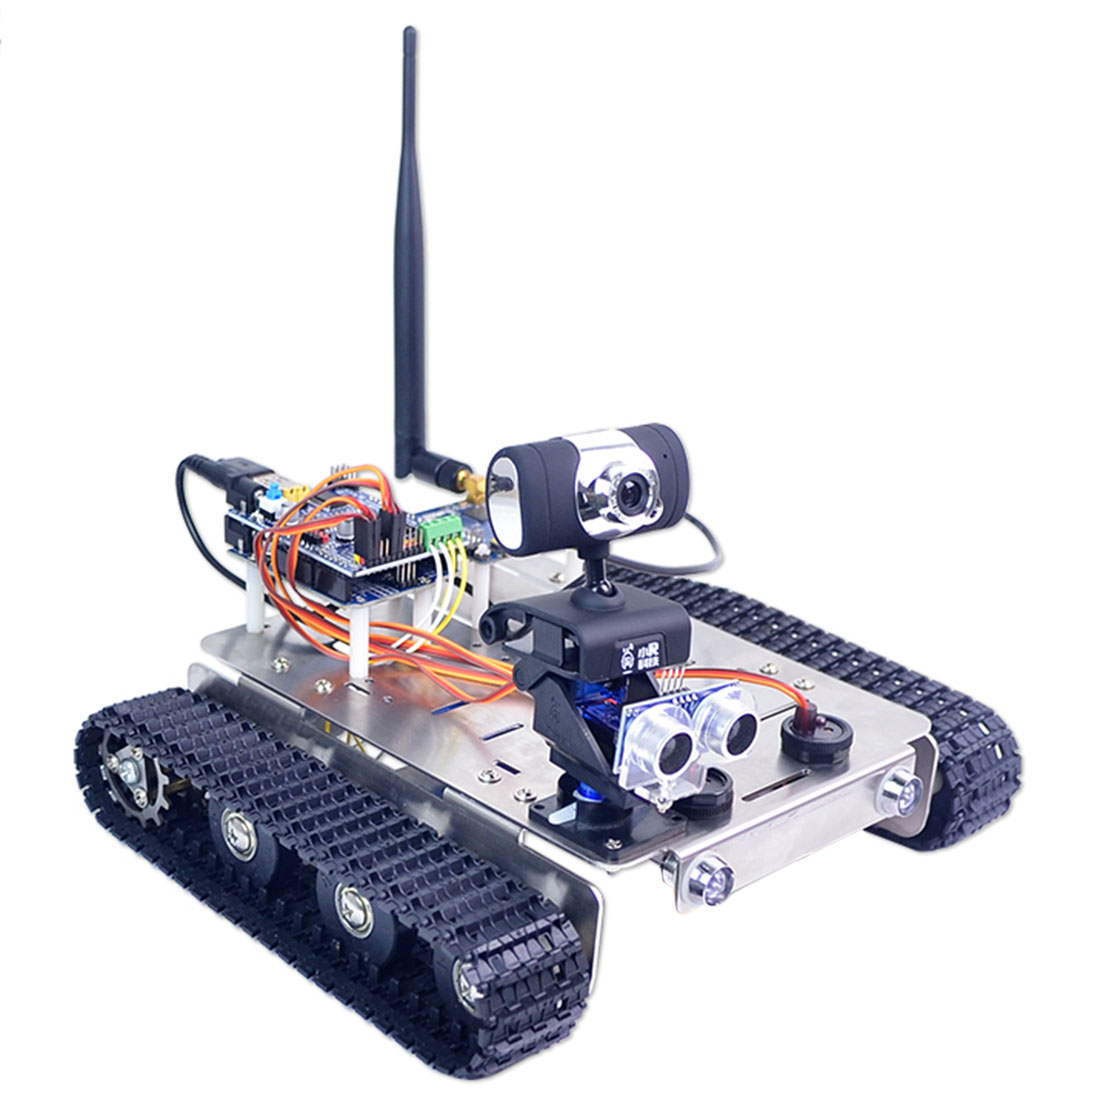 DIY Robot Wifi+Bluetooth Stainless Steel Chassis Track Tank Steam Educational Car With Graphic Programming XR BLOCK Linux